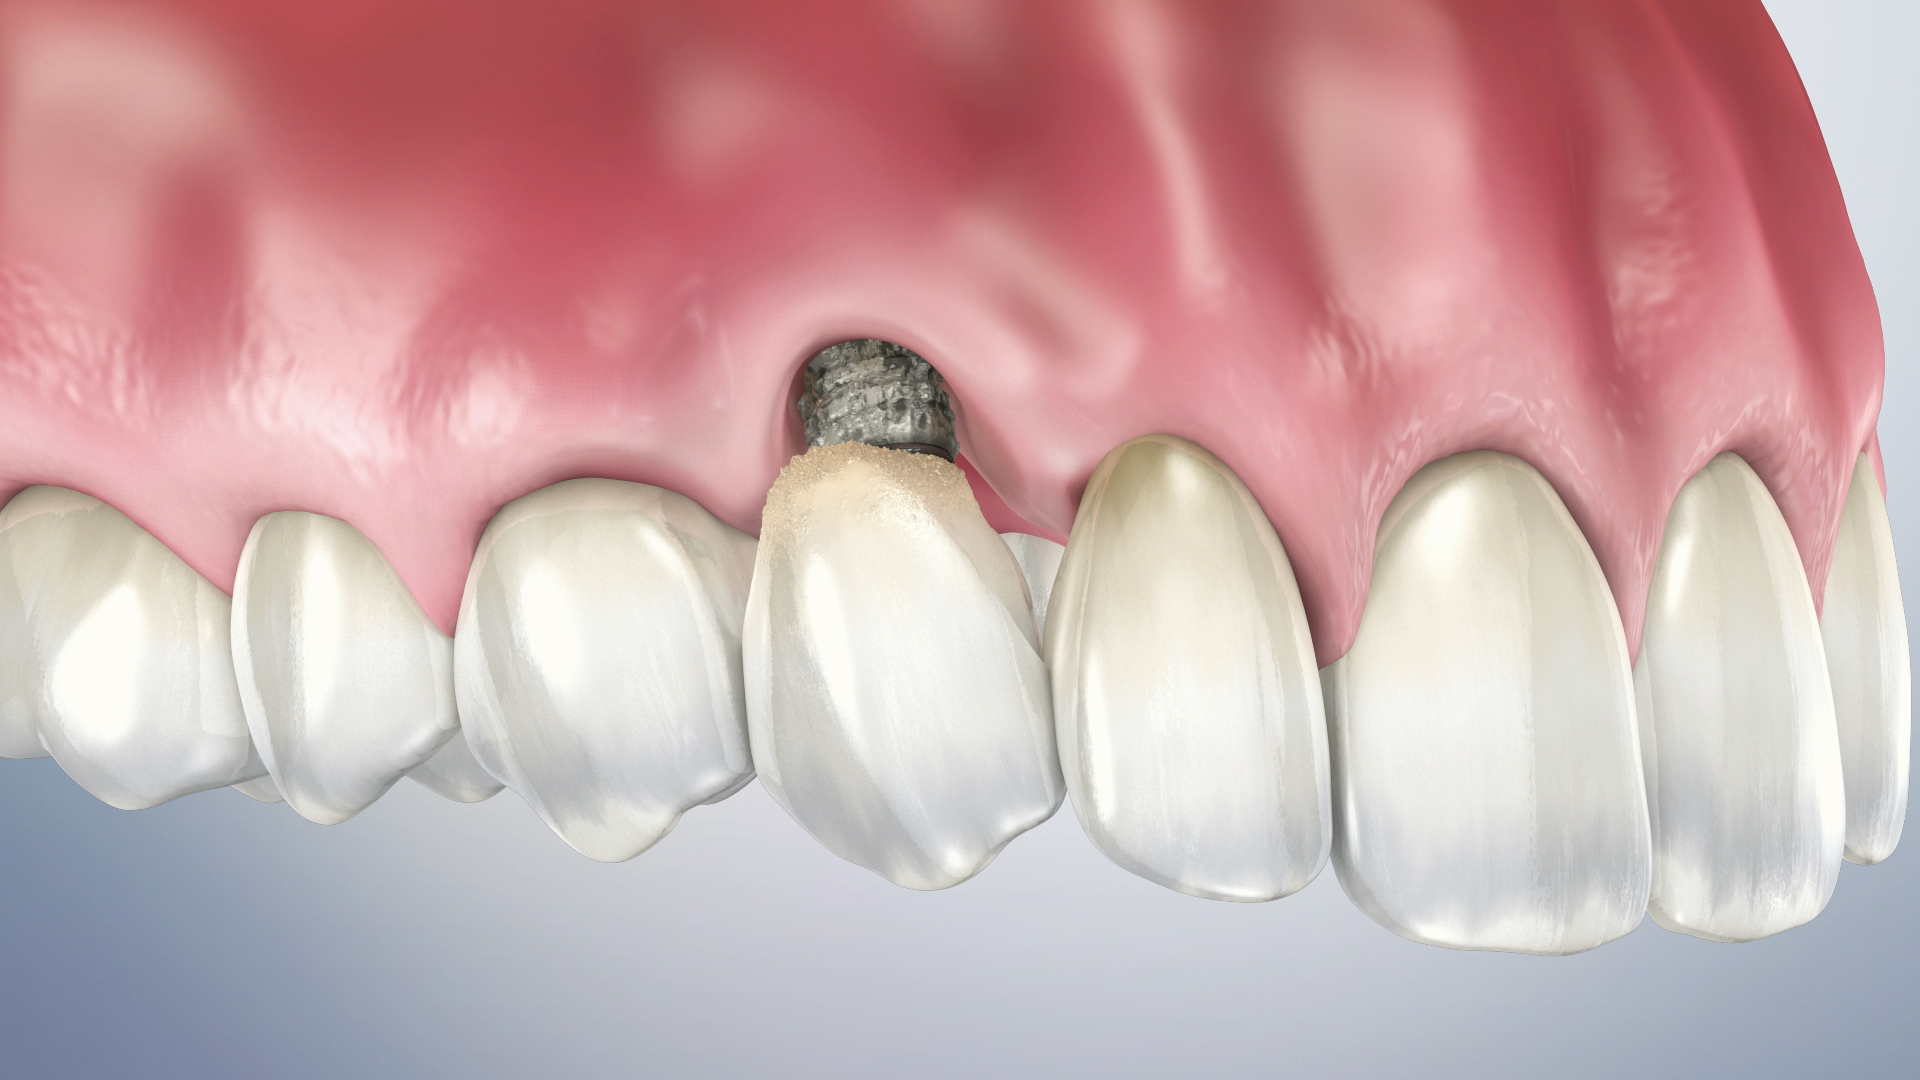 Thumbnail for a video on Peri-Implantitis